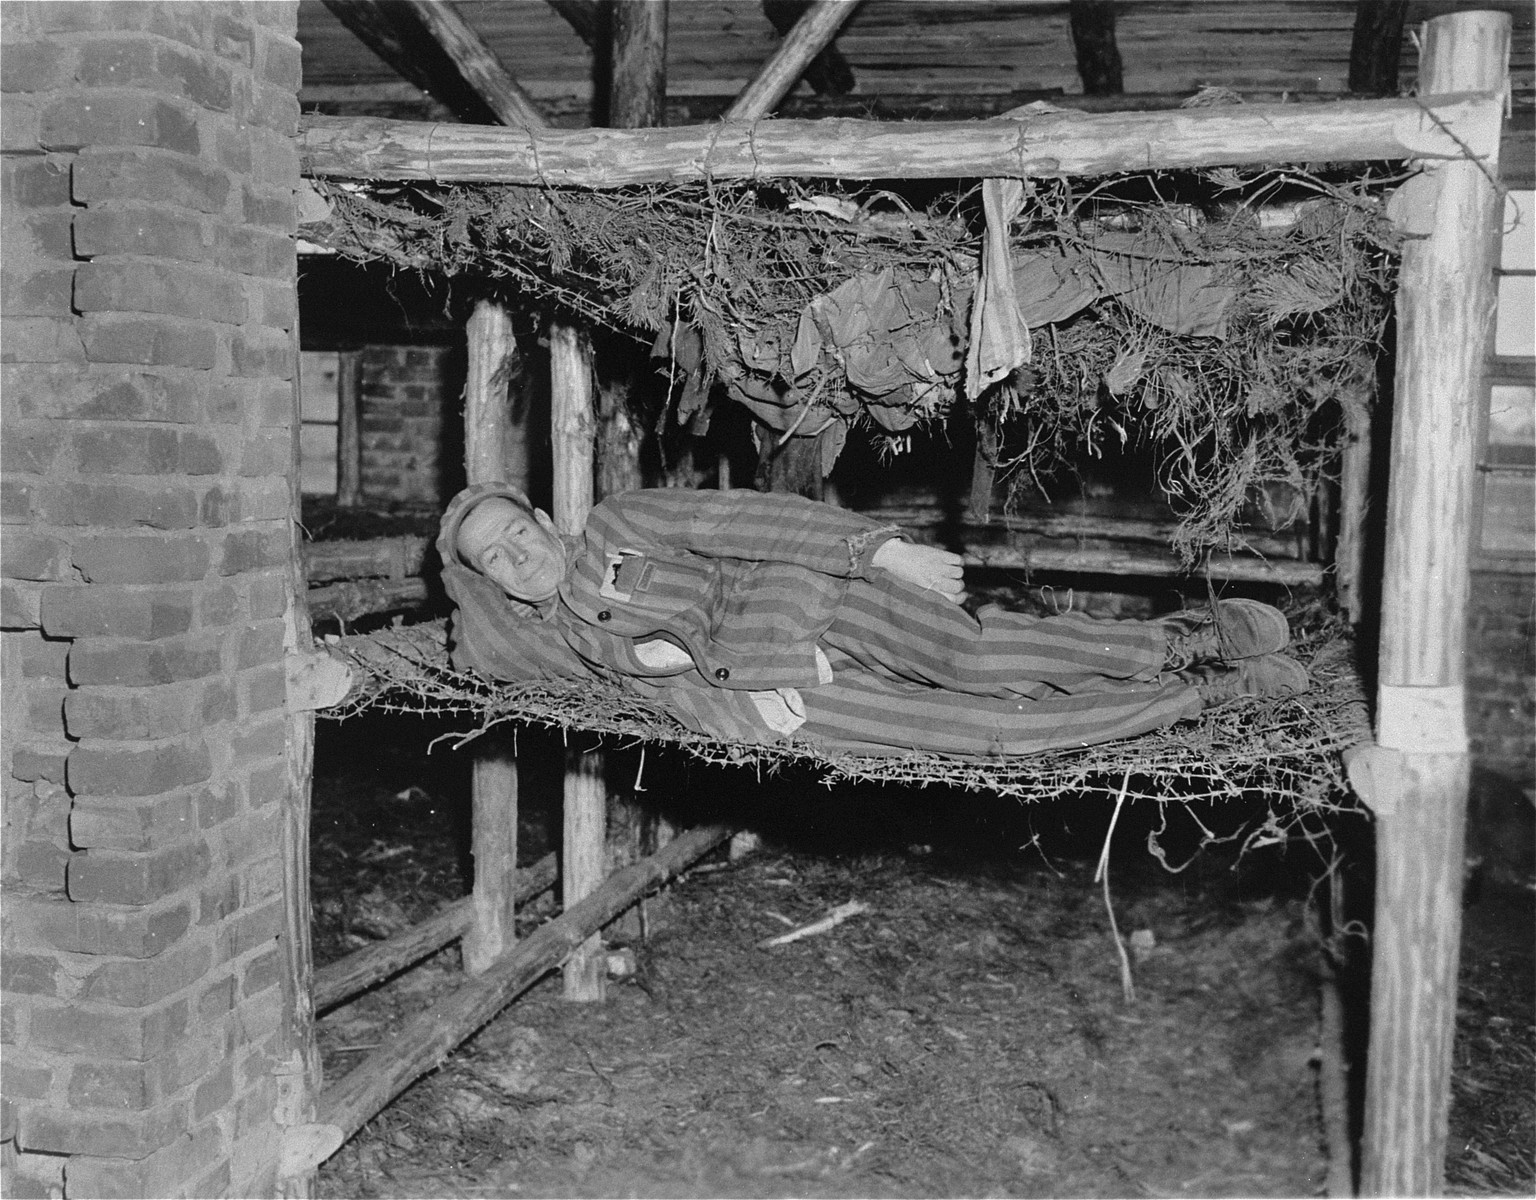 Monsieur Della Giacomo of Limoges, France lies on a bunk made of barbed-wire and rags in the newly liberated Woebbelin concentration camp.